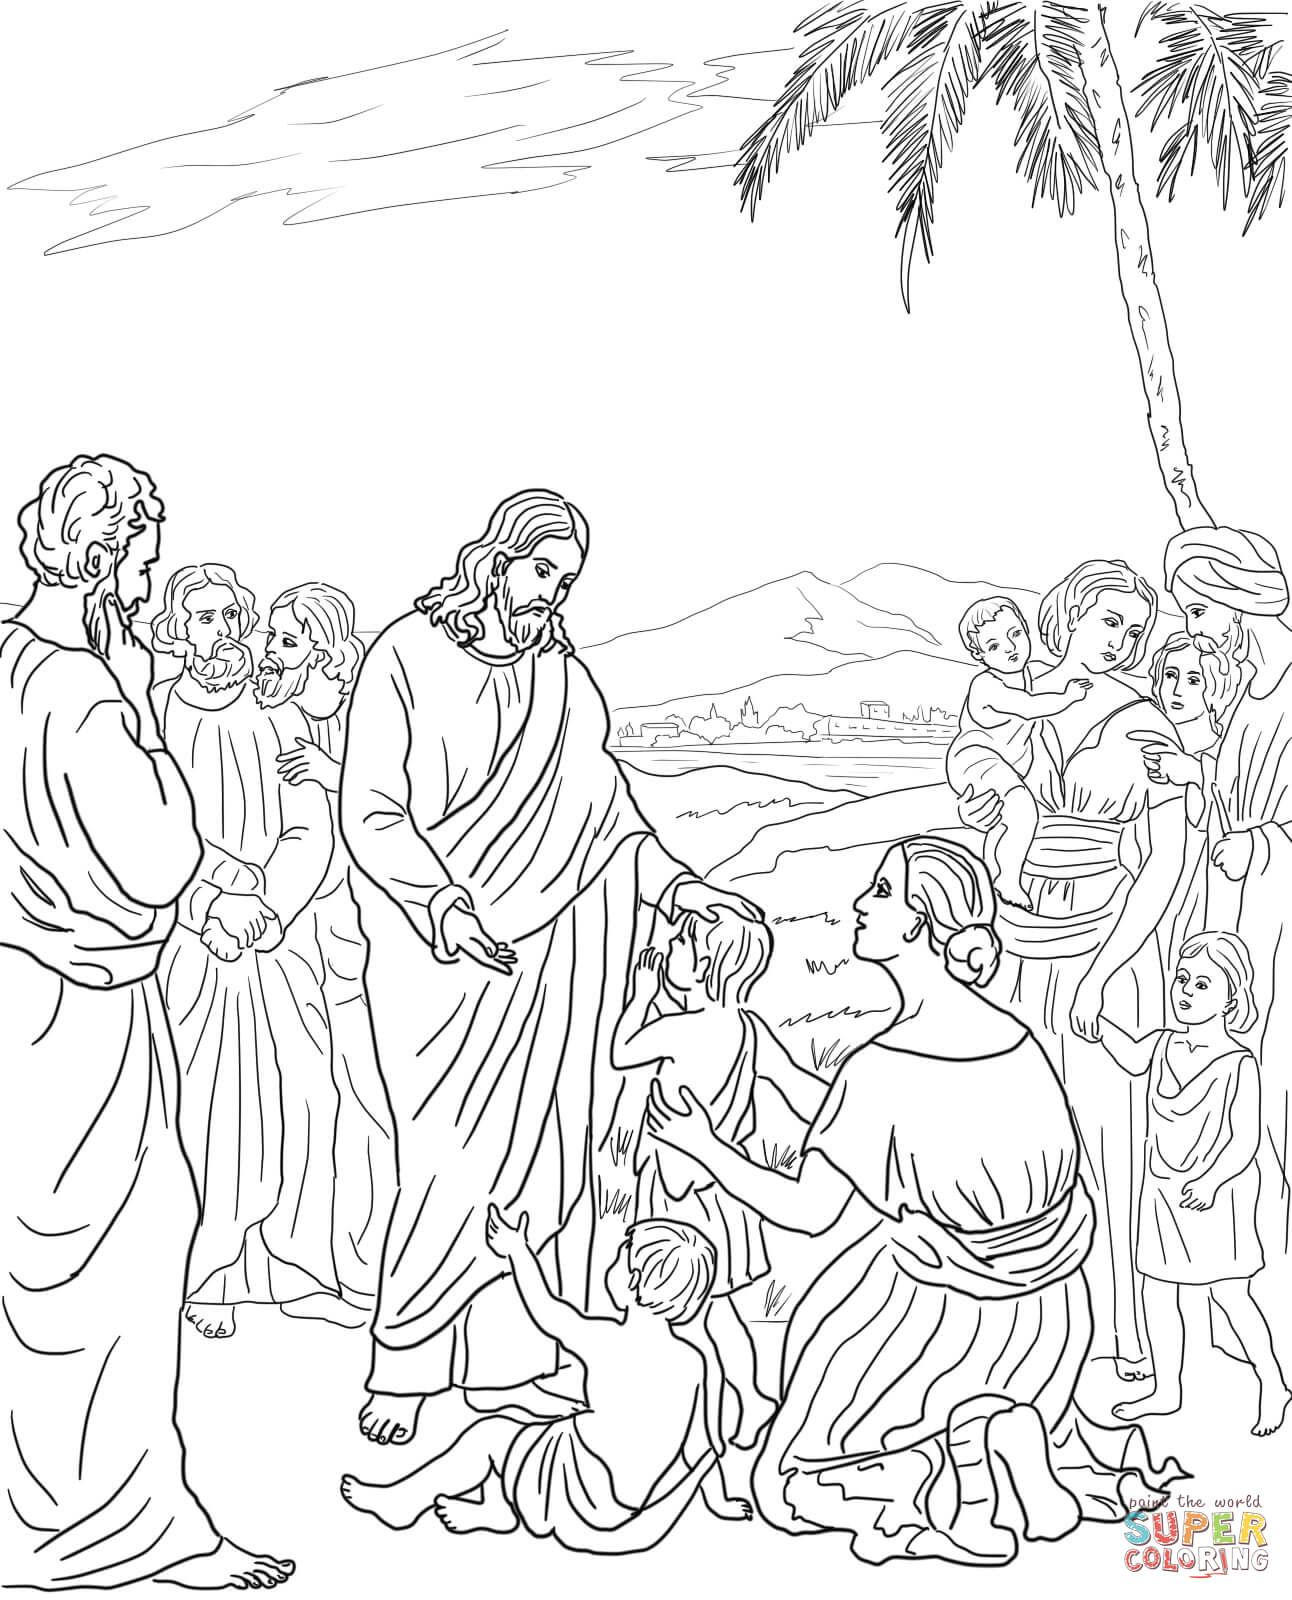 Jesus Blesses The Children Coloring Page From Mission Period Category Select 25409 Printable Crafts Of Cartoons Nature Animals Bible And Many